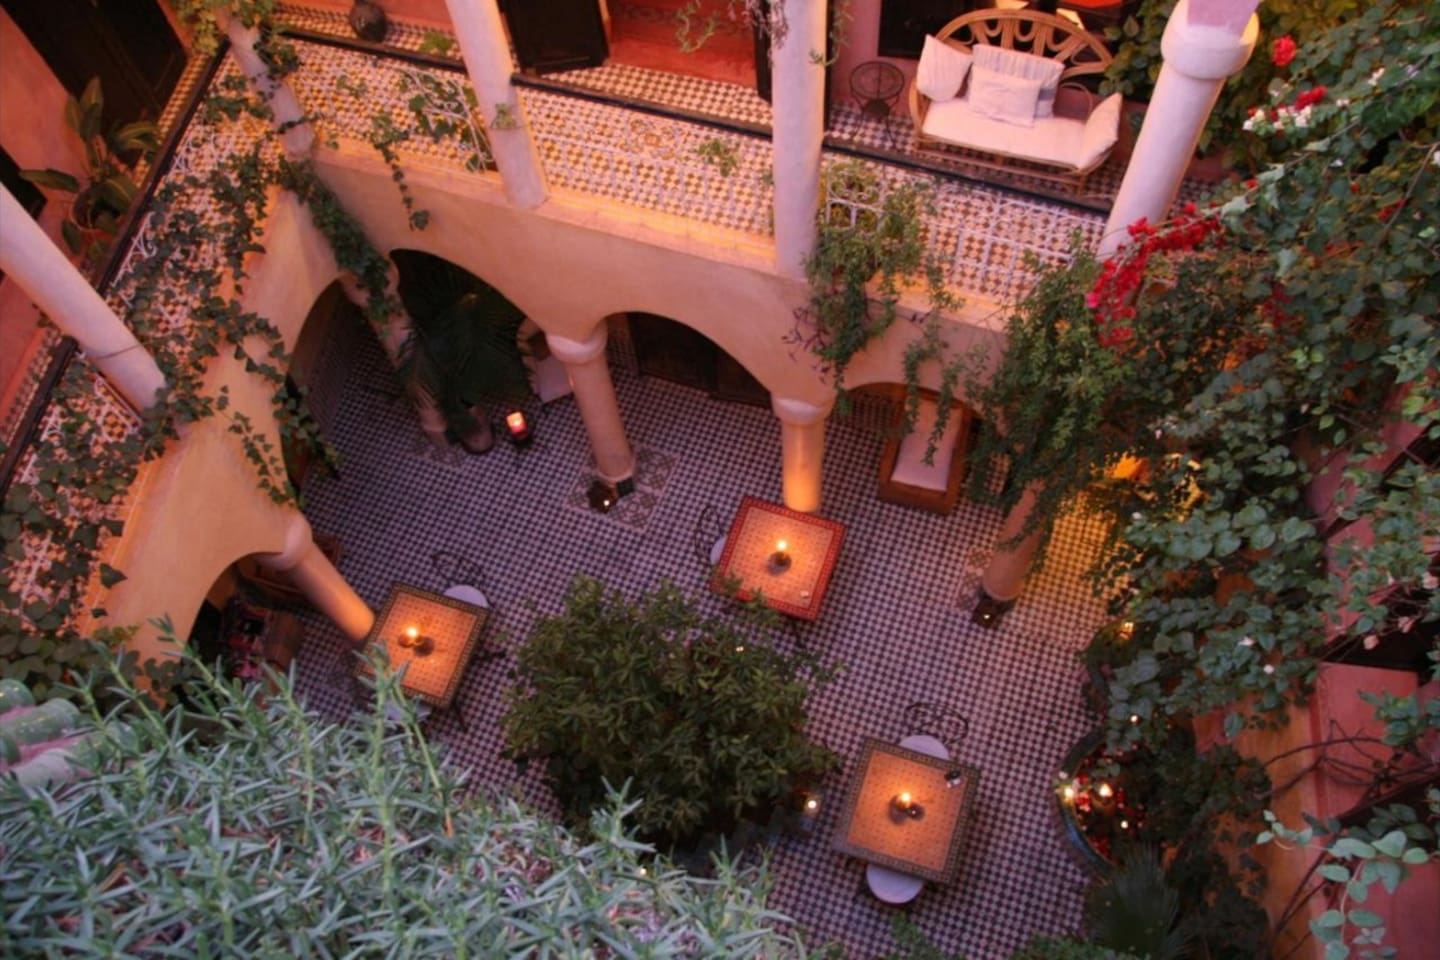 The Evening Courtyard